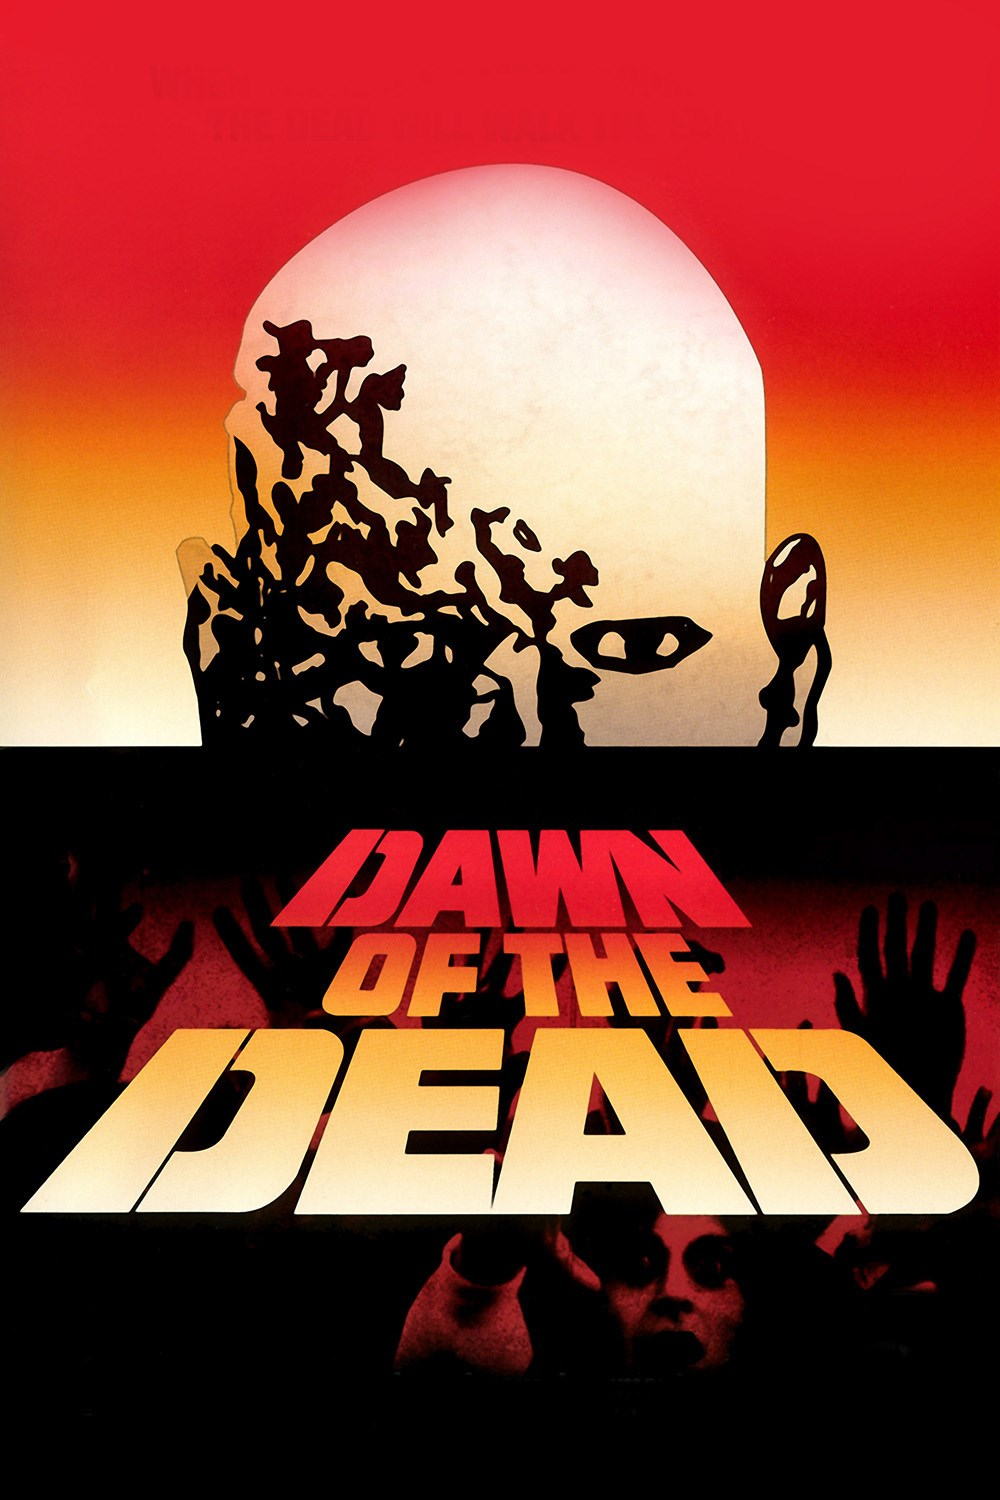 https://i.jeded.com/i/dawn-of-the-dead-1978.26063.jpg